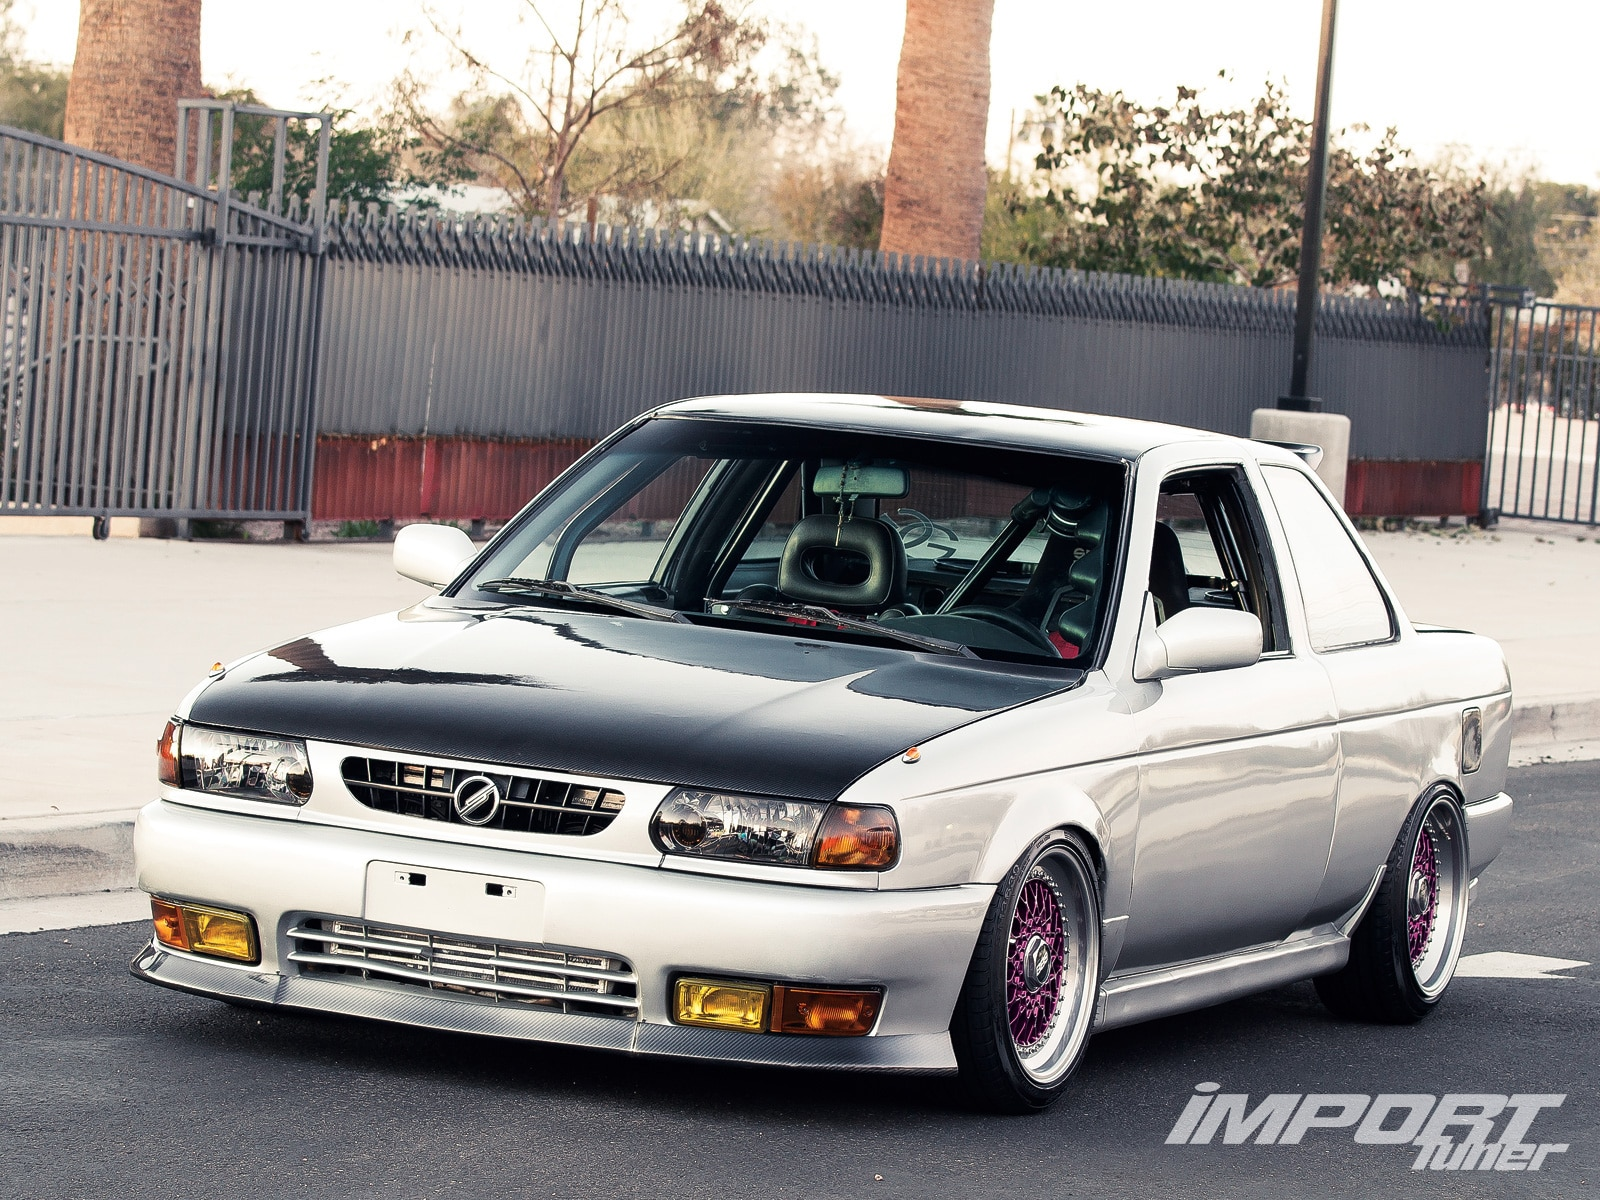 1992 Nissan Sentra Xe Import Tuner Magazine Shop millions of cars from over 21,000 dealers and find the perfect car. super street